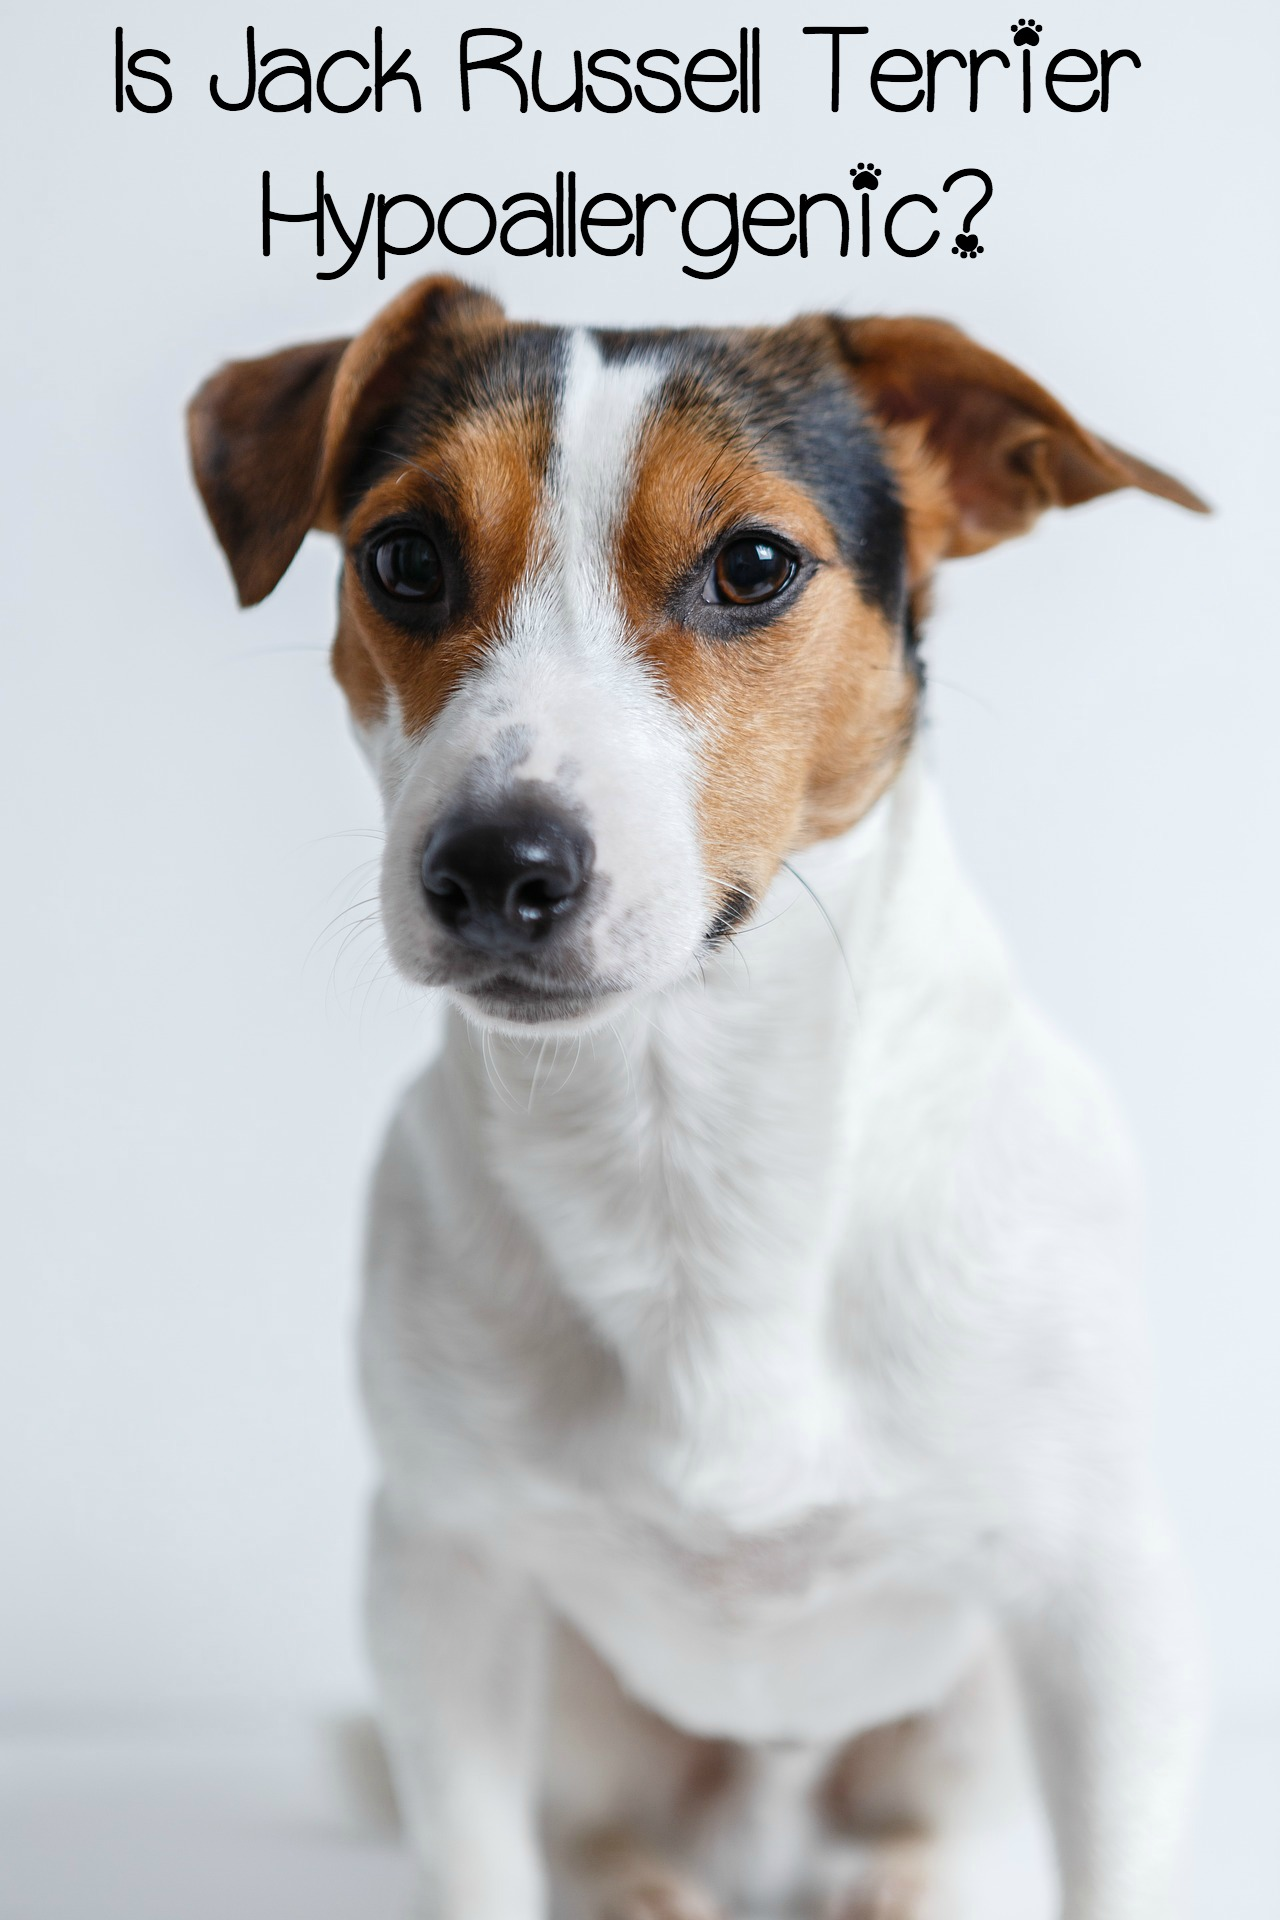 Is the Jack Russell Terrier Hypoallergenic (Maybe, Maybe Not, It Depends on You)